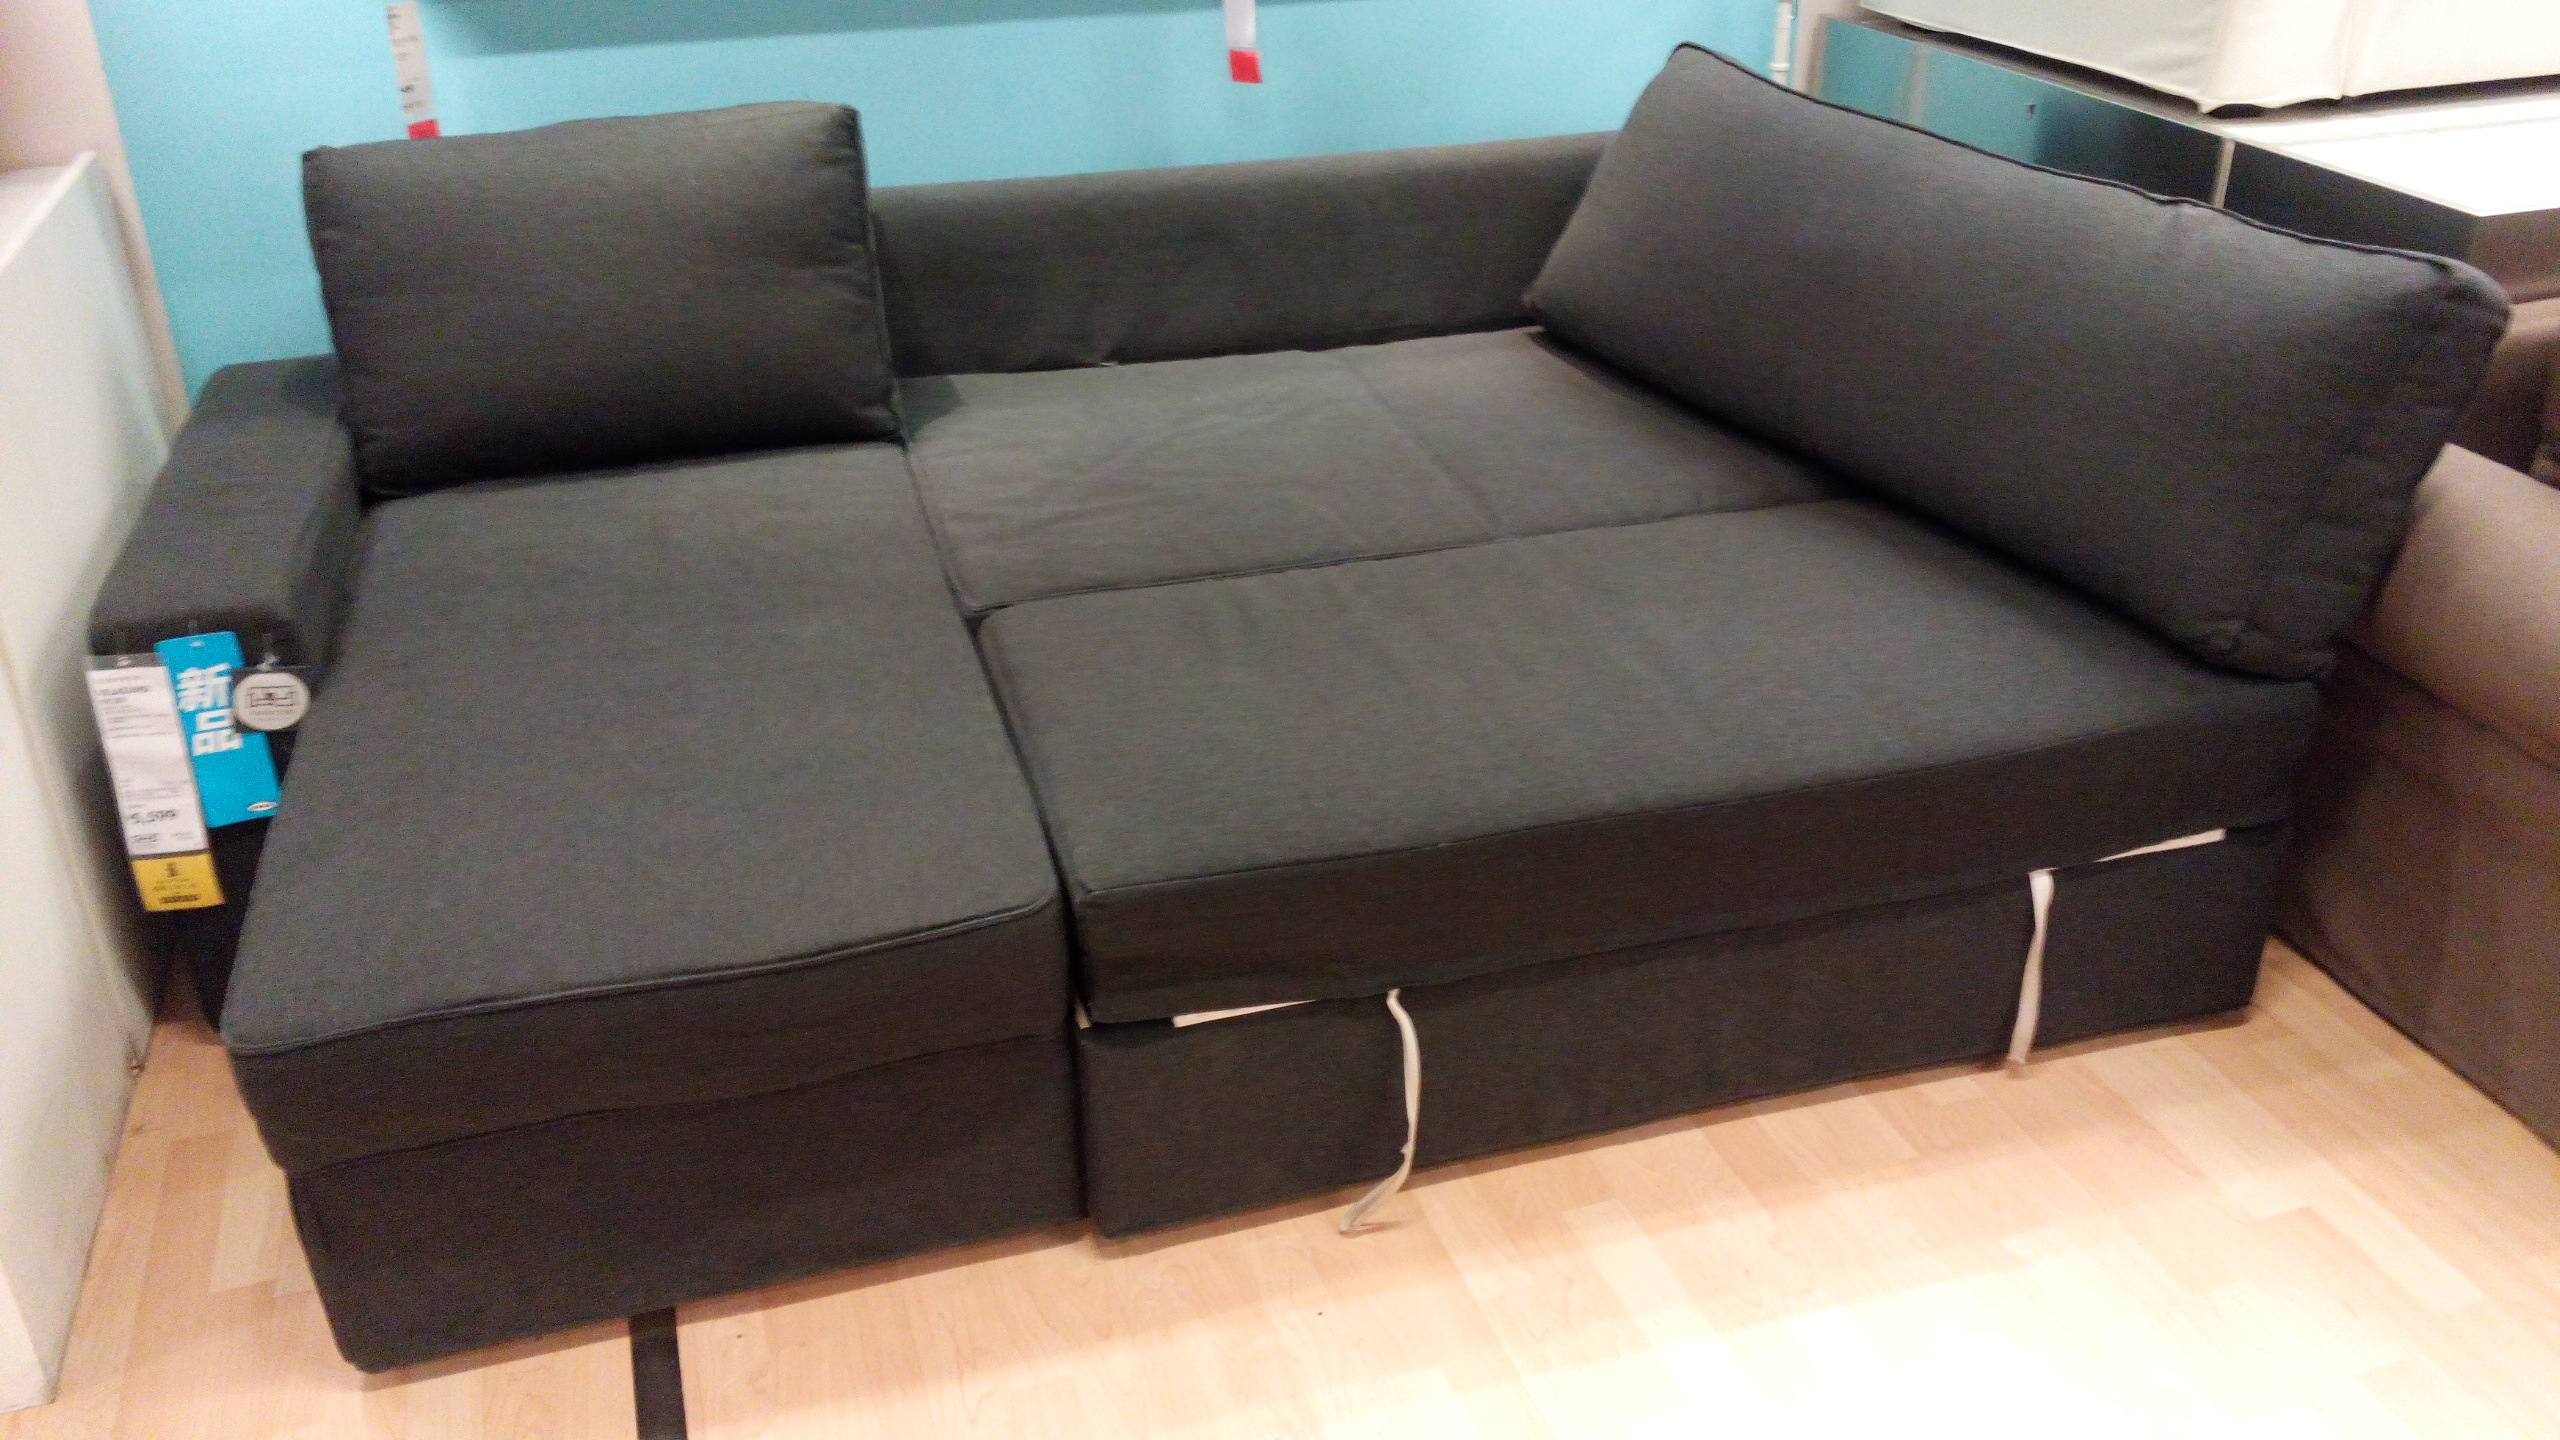 Couches In Ikea Top 10 Ikea Sofa Beds Reviewed Jan 2019 Sleep Good Tonight